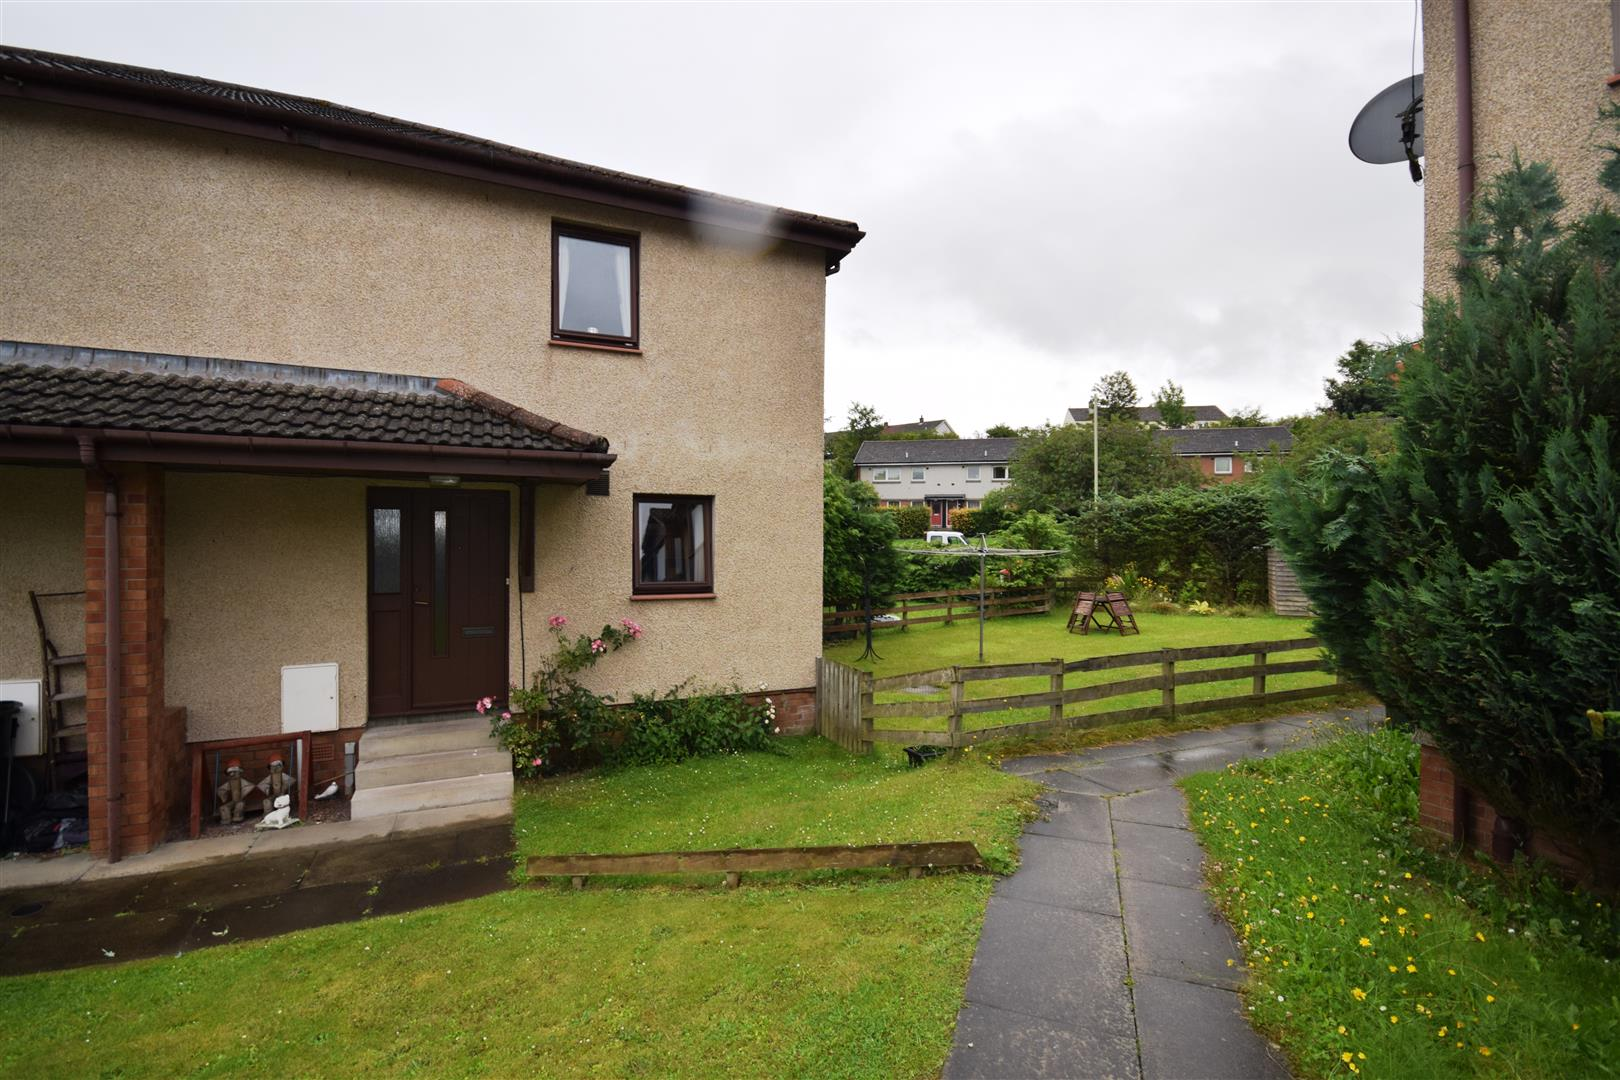 7, Allison Crescent, Perth, Perthshire, PH1 2UA, UK